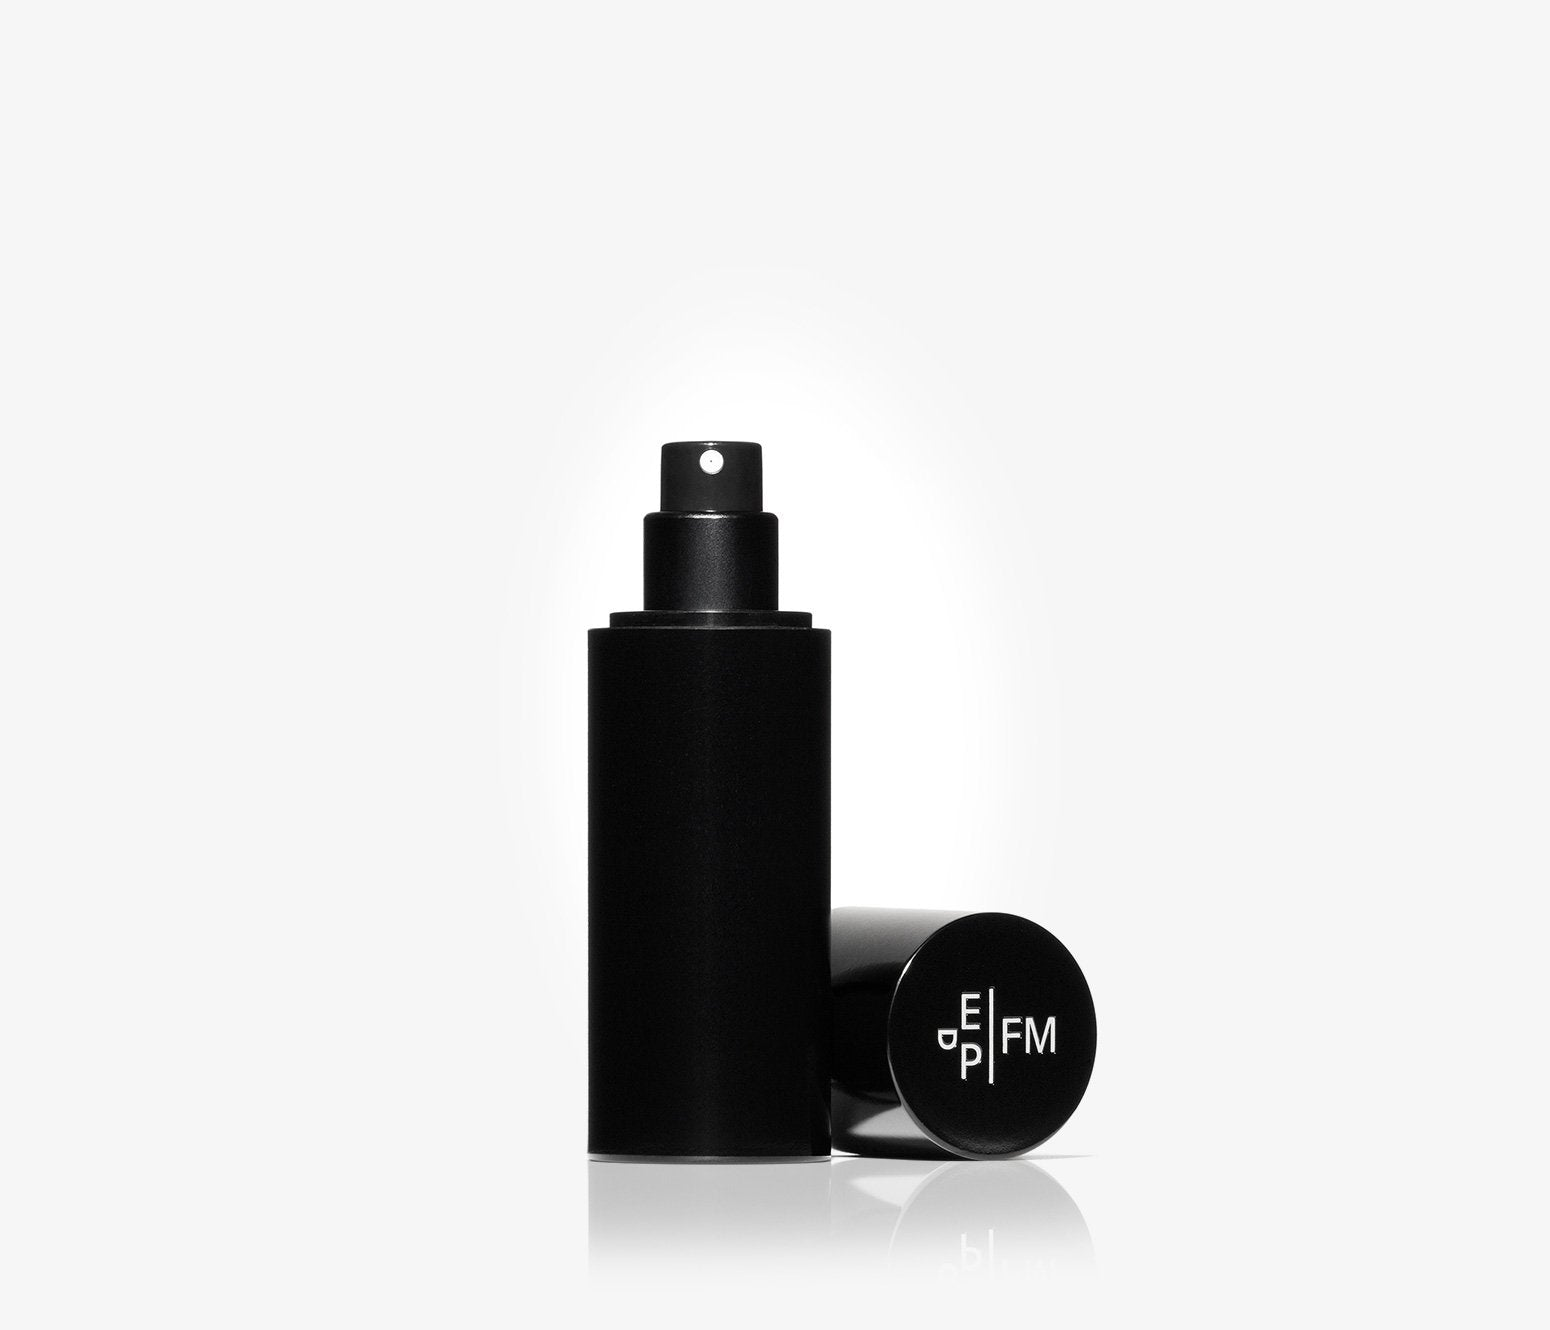 Frederic Malle - Signature Travel Spray Case - Black - TAM001 - Product Image - Fragrance - Les Senteurs